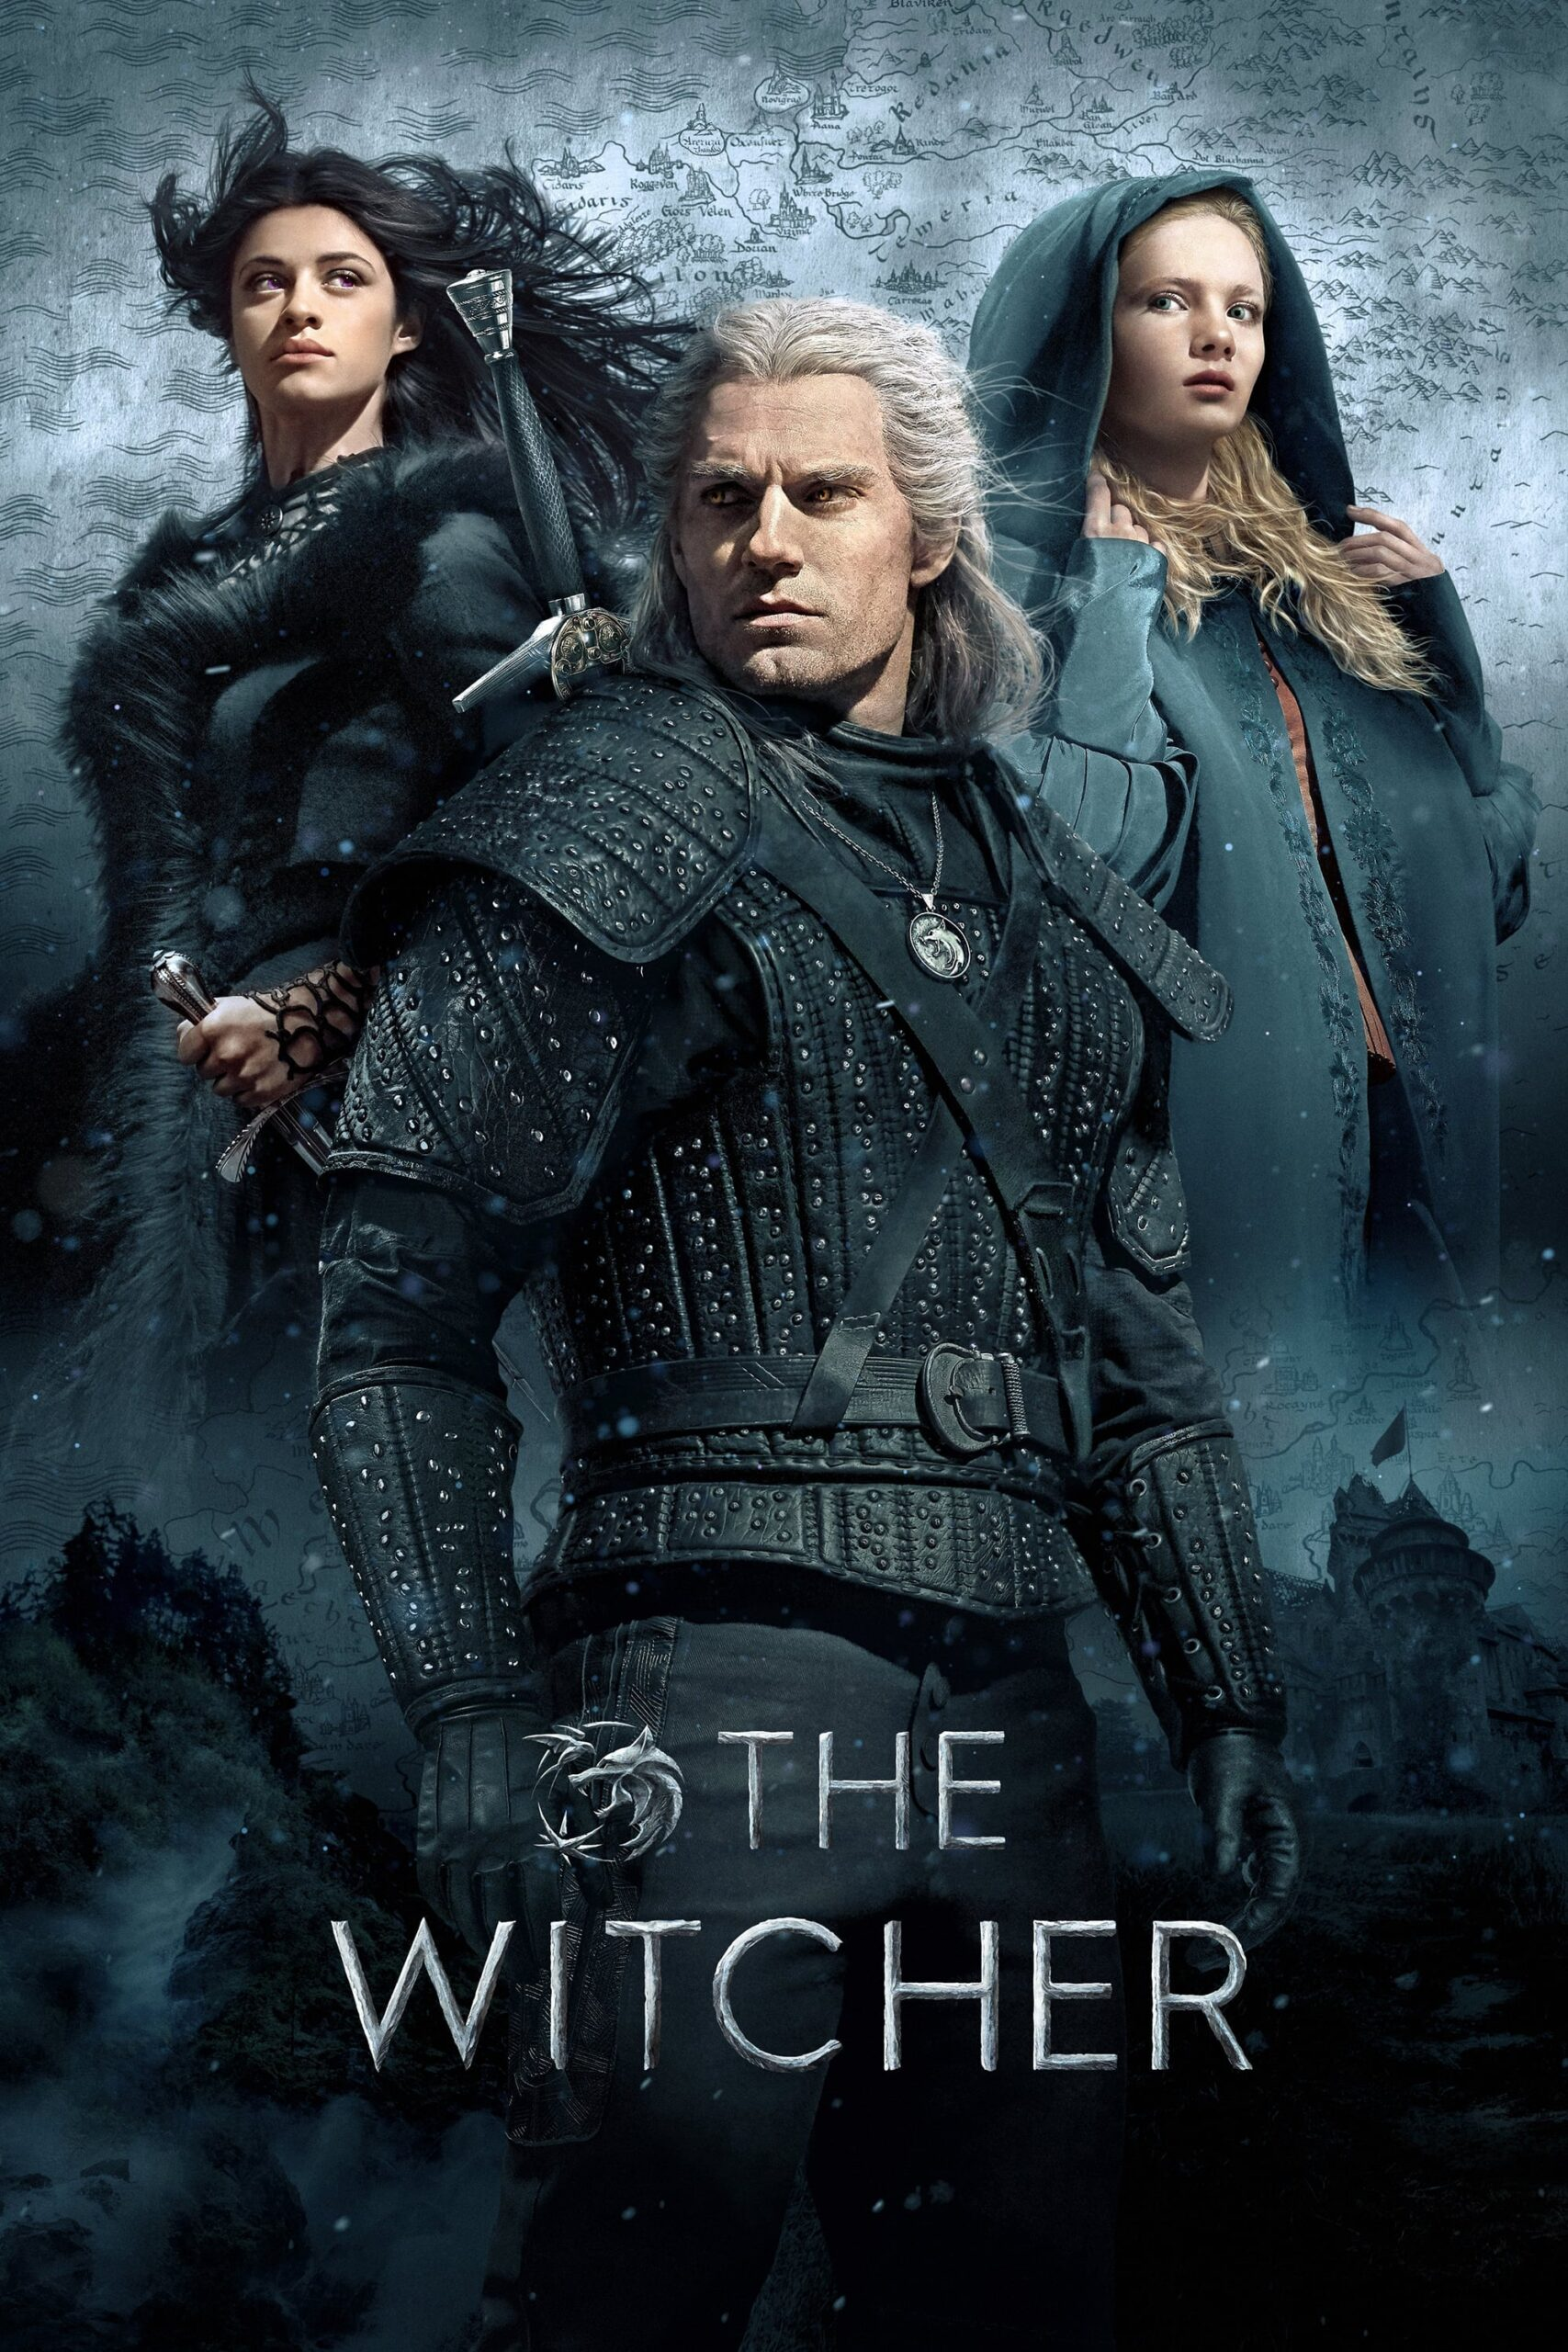 The Witcher Streaming Serie : witcher, streaming, serie, Witcher, Series, Streaming, Online, Watch, Netflix